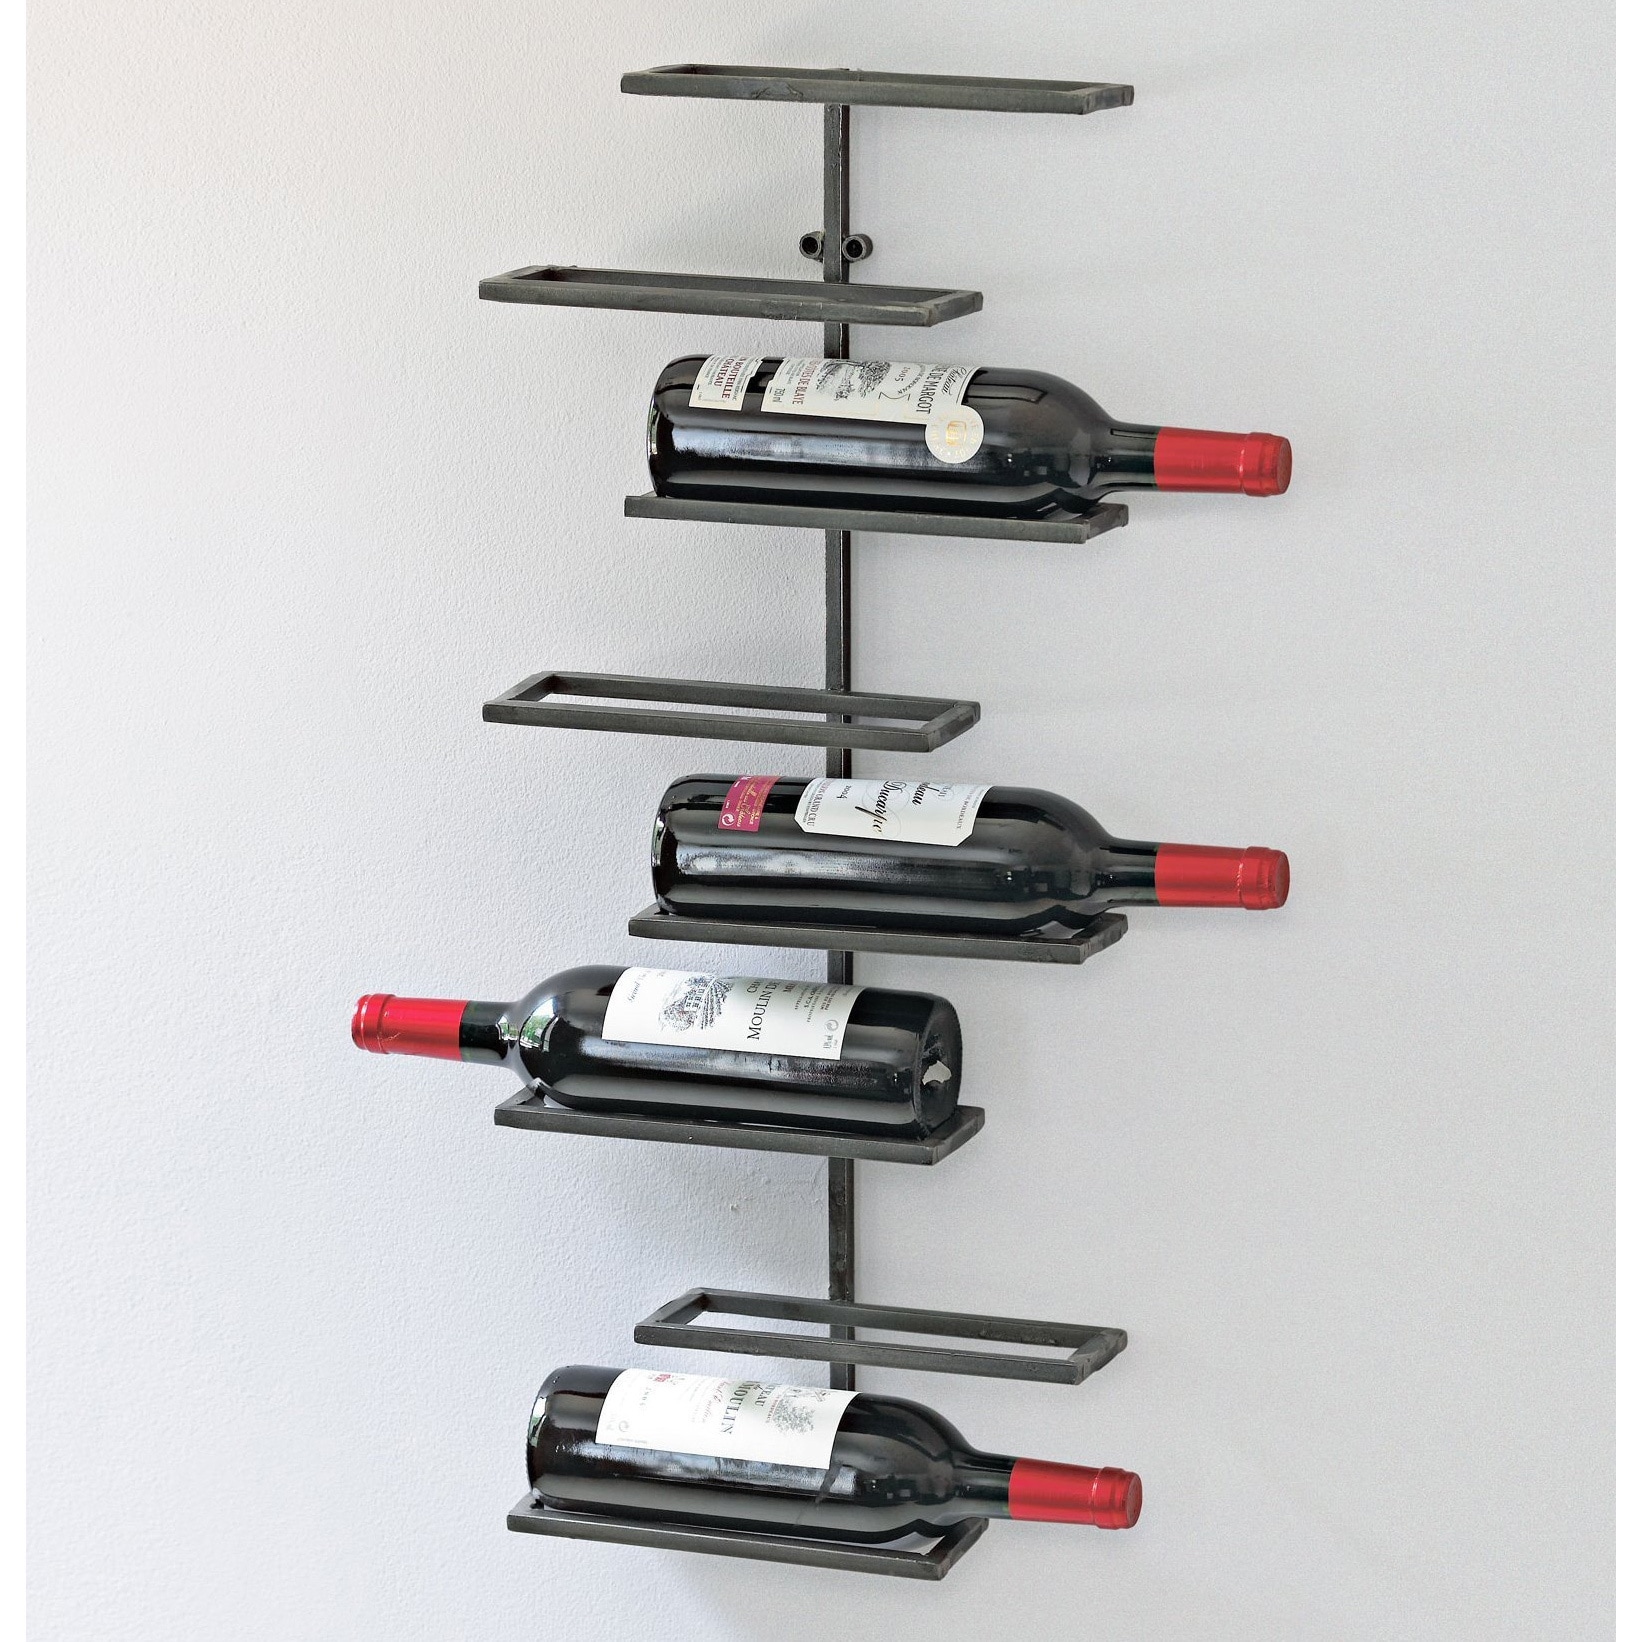 8 Bottle Urban Wall Wine Rack